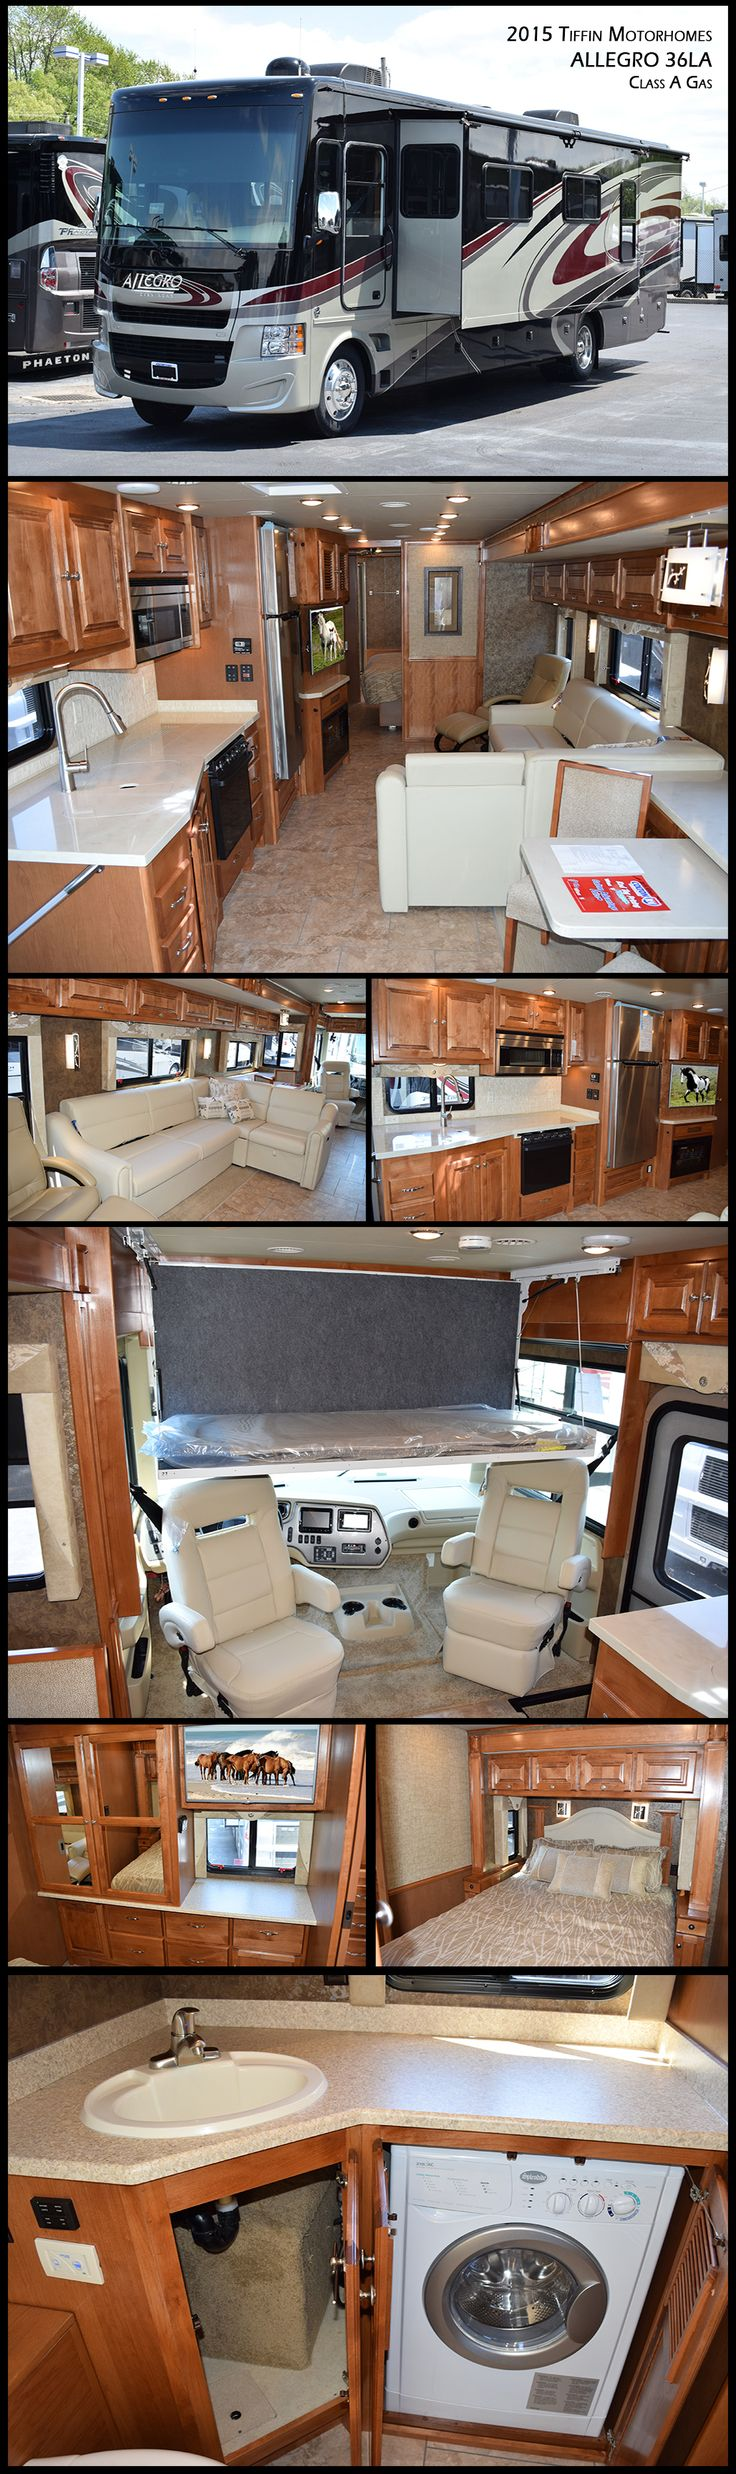 The 2015 Tiffin Motorhomes Allegro 36LA Gas motor coach continues to be a real crowd-pleaser and continually scores high in comfort and design. In addition to the chaise sofa bed in the living area, this coach has a drop down bunk above the front cab. Come aboard and see why the Allegro 36LA has been a part of so many lives for so long.